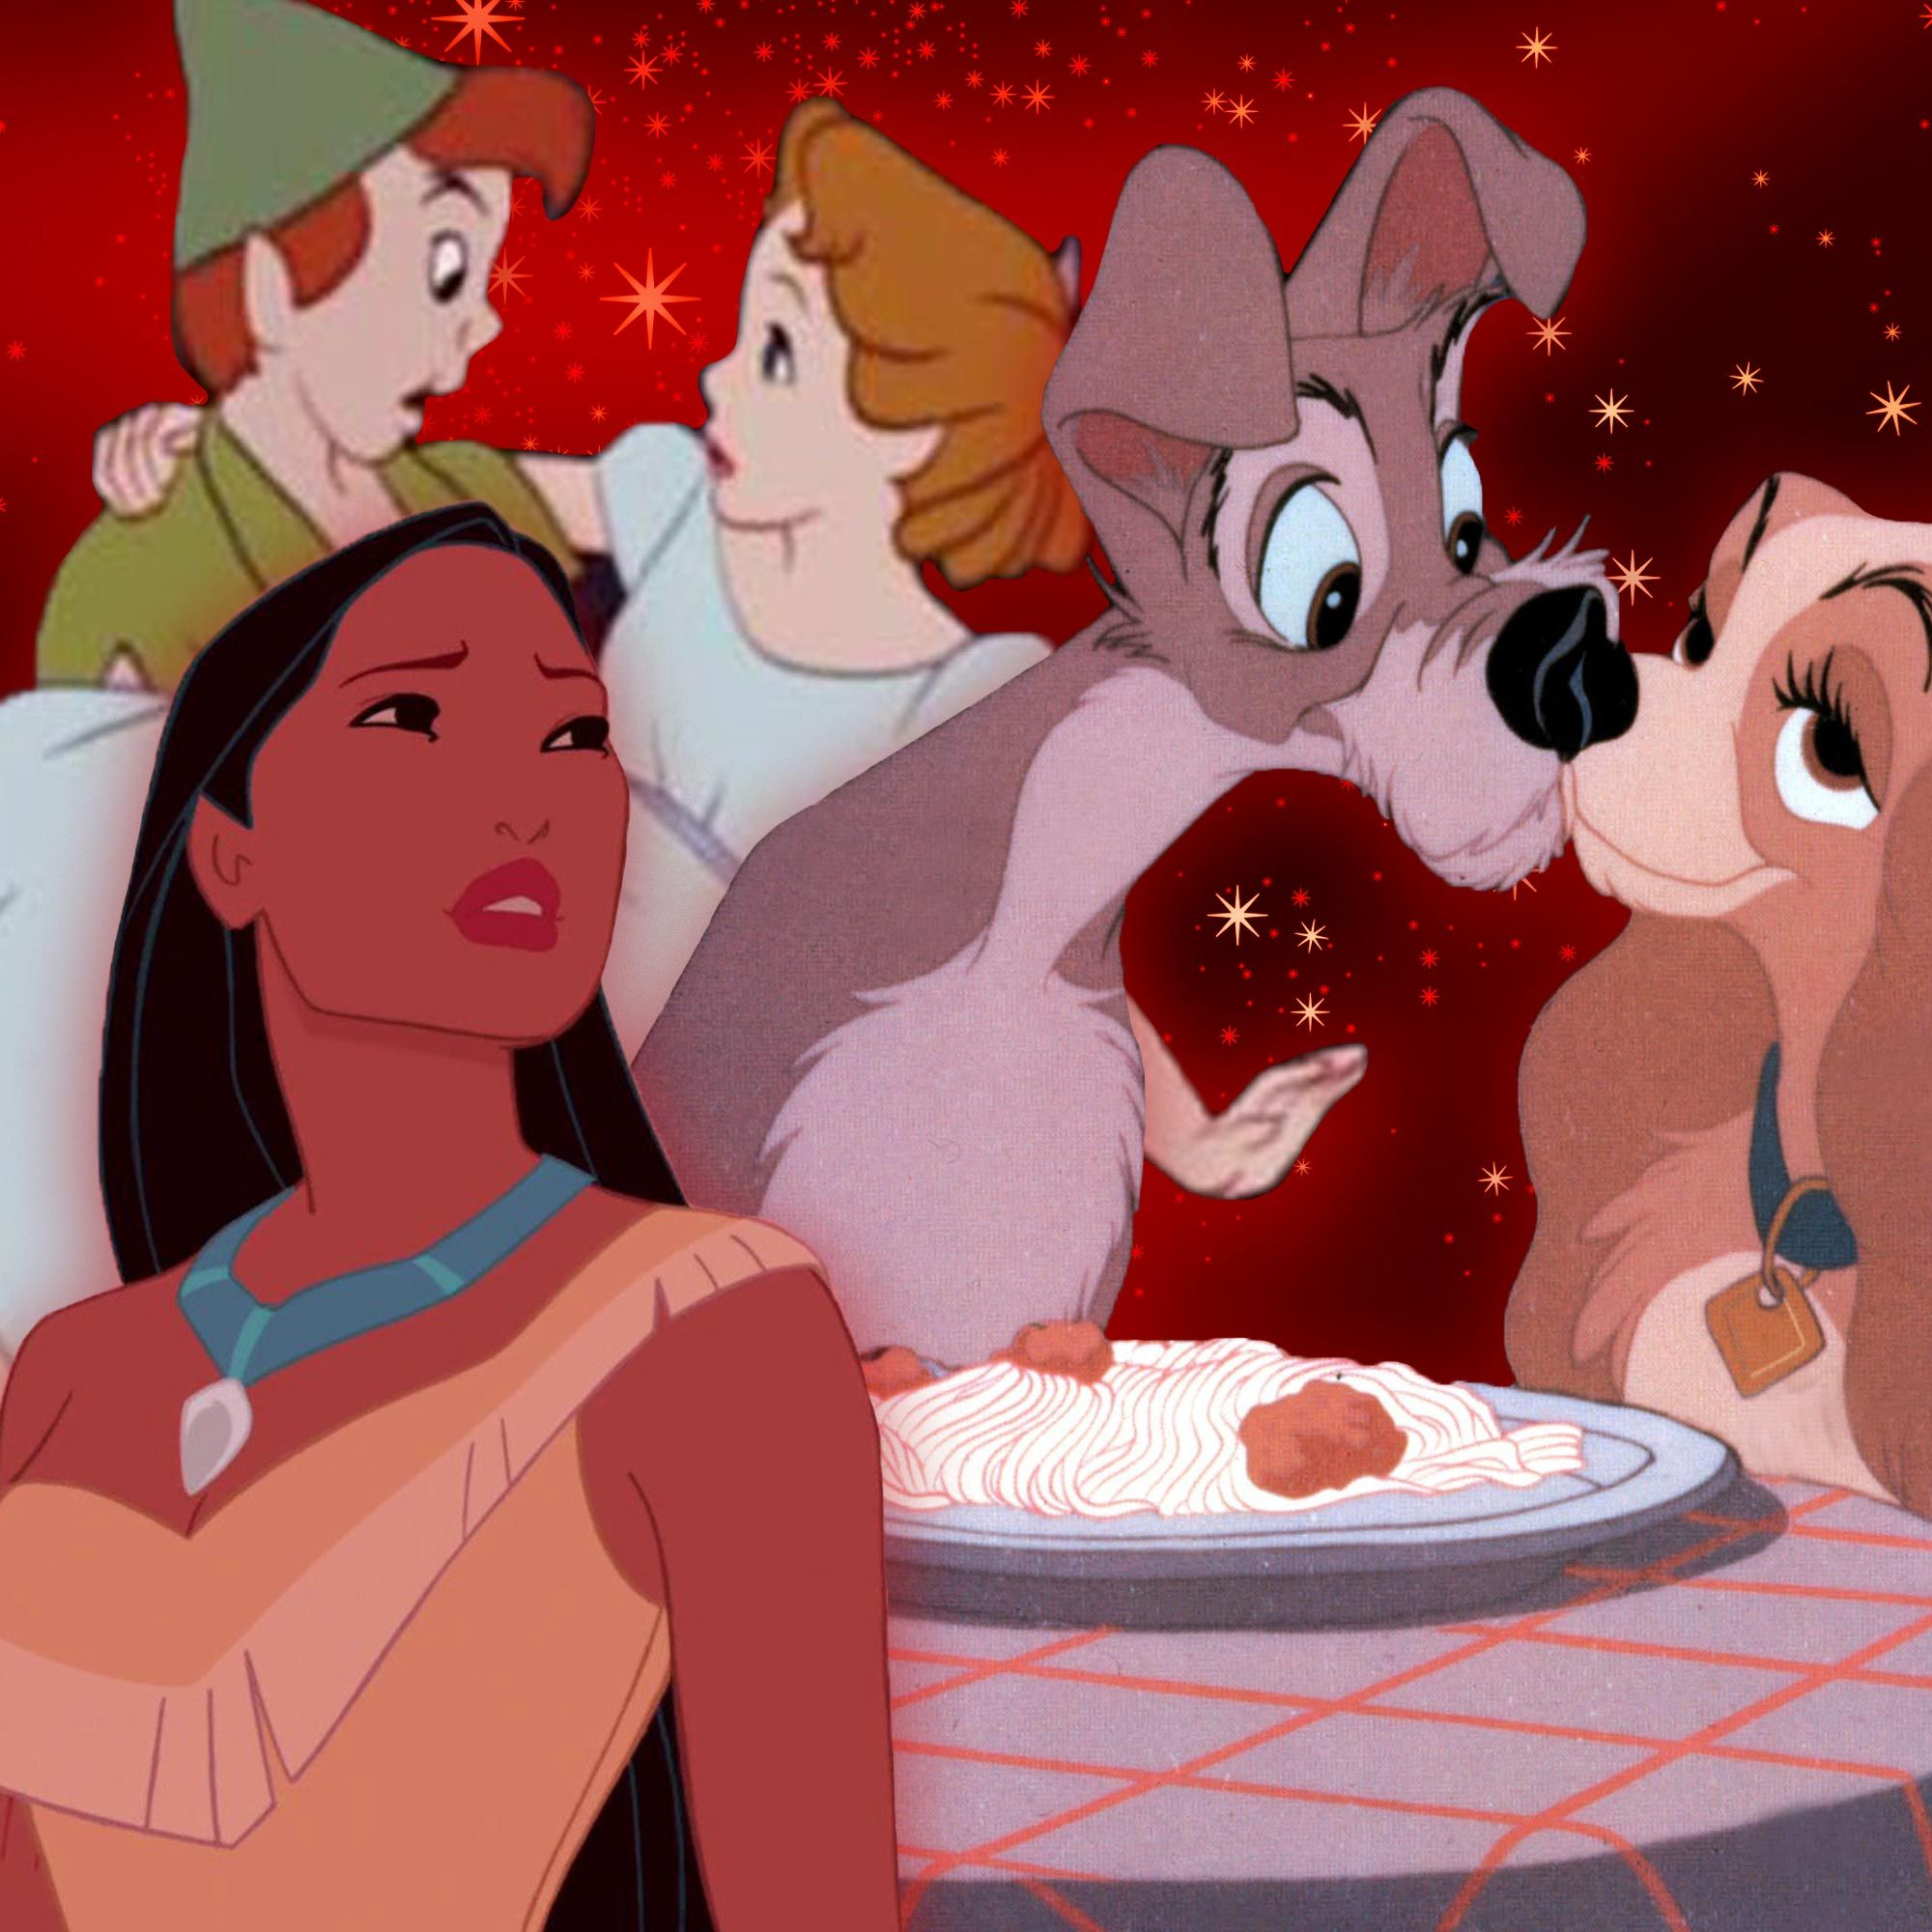 """Disney+'s warning of """"outdated cultural depictions"""" misses the point"""